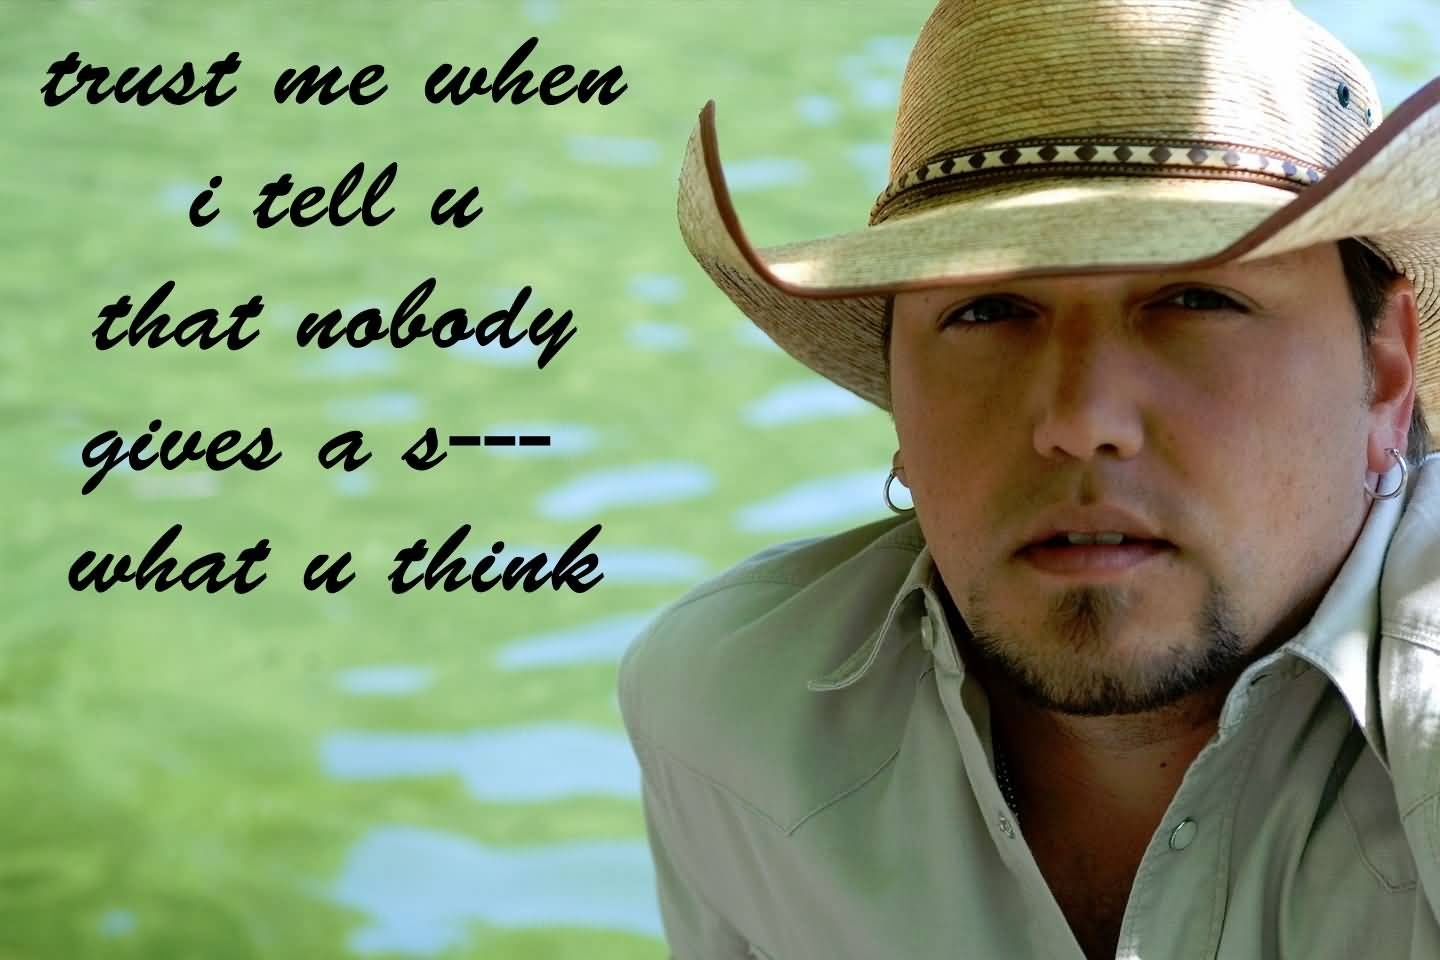 Singer Quotes trust me when i tell u that nobody